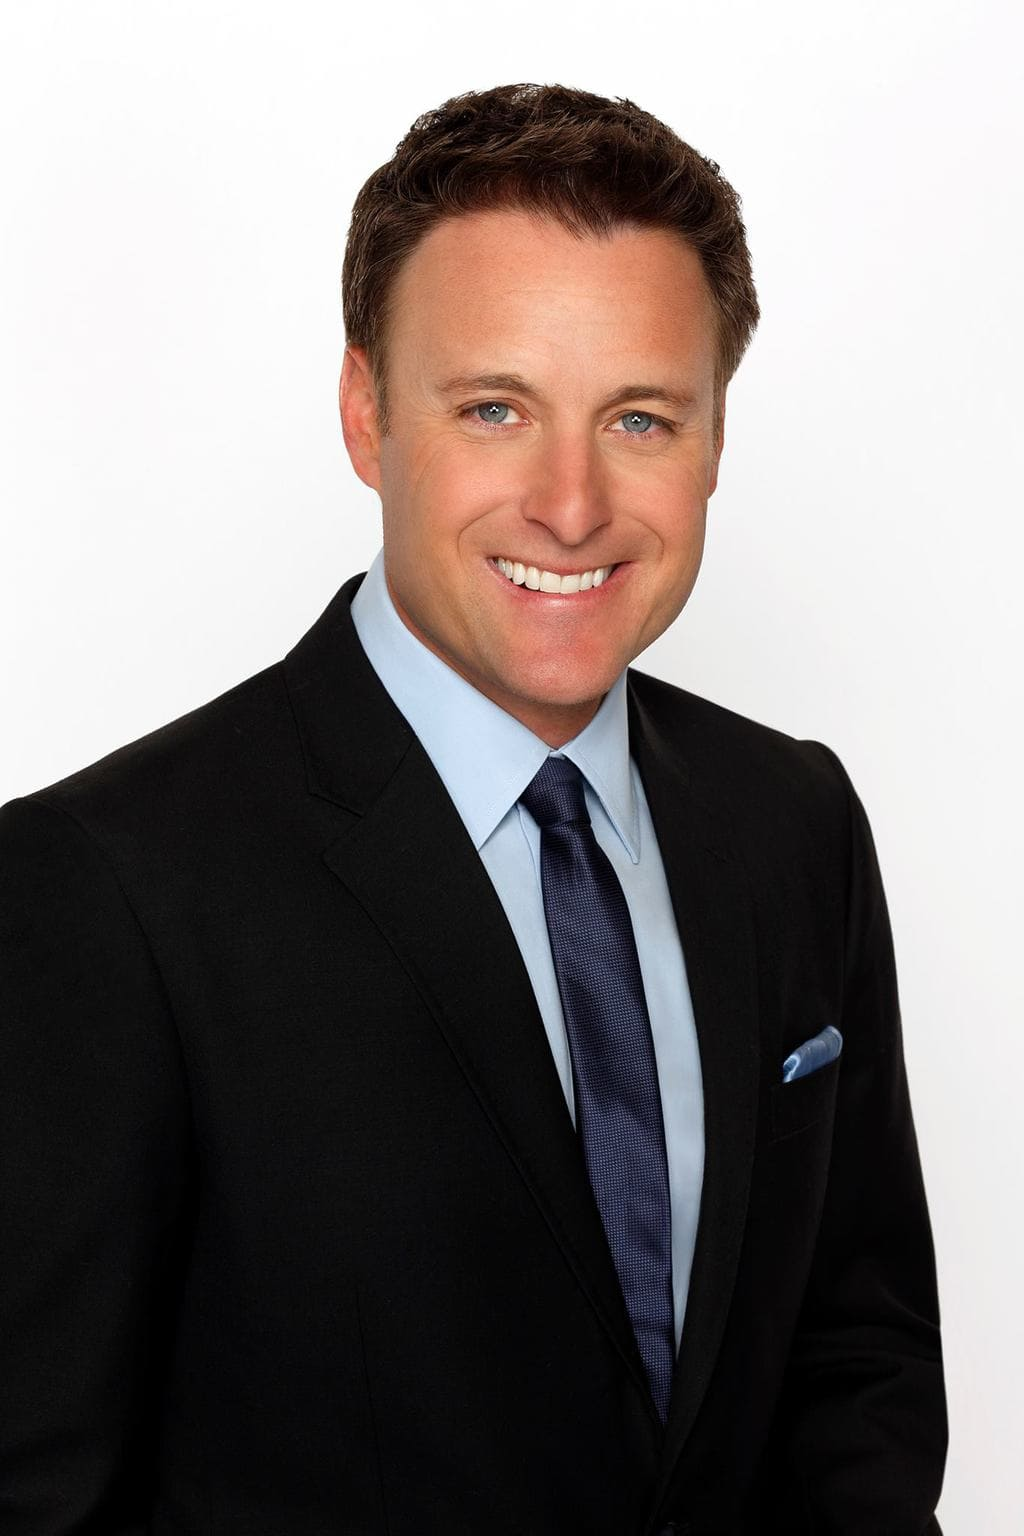 """Chris Harrison is the host of the ABC Television Network's """"The Bachelor"""" and """"The Bachelorette"""" series. (ABC/Craig Sjodin)"""